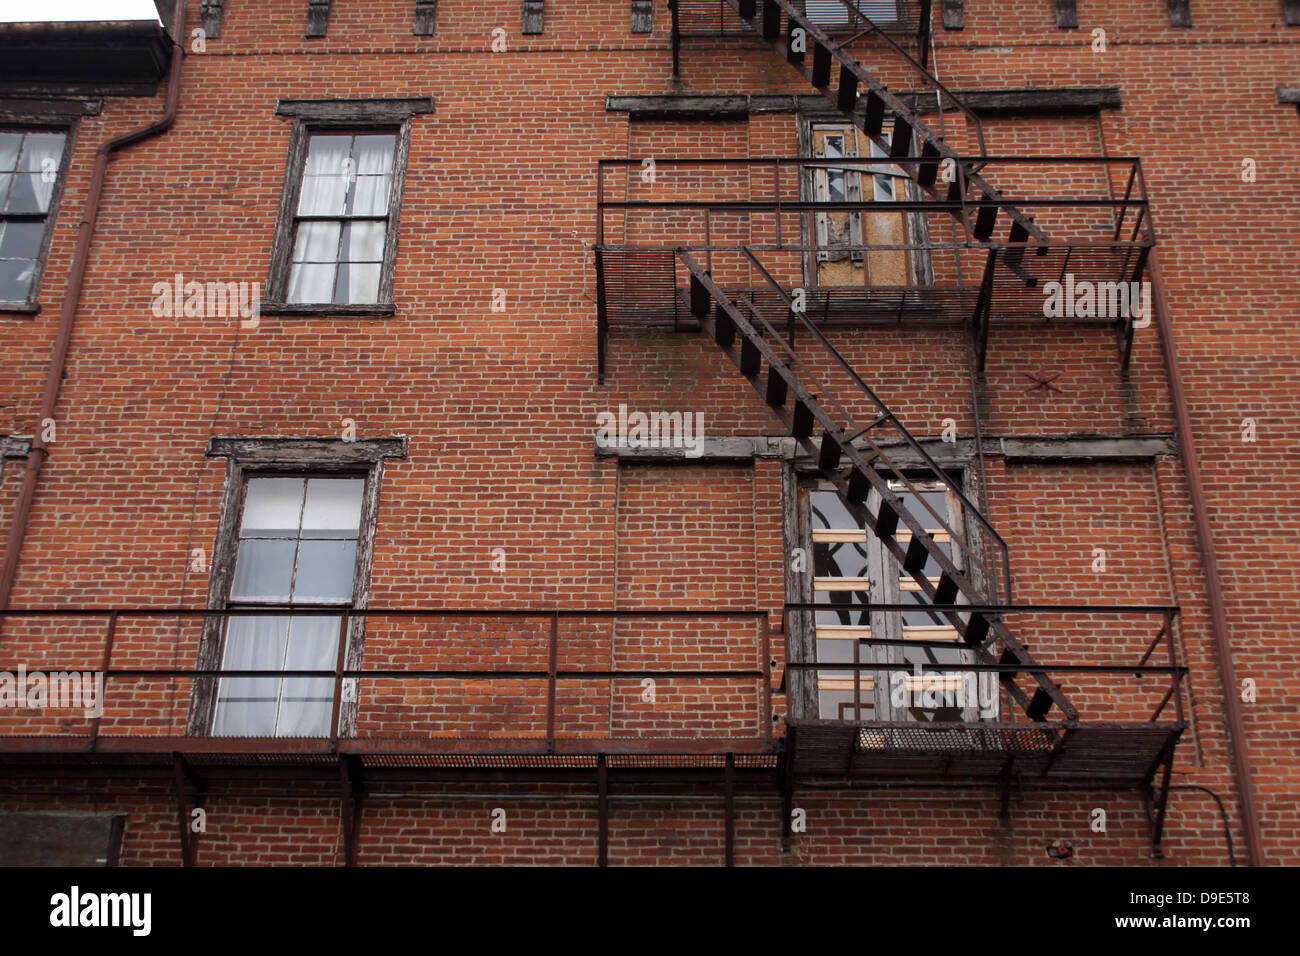 OLD BRICK BUILDING BLACK METAL FIRE ESCAPES STEPS STAIRS WINDOWS RAILING - Stock Image